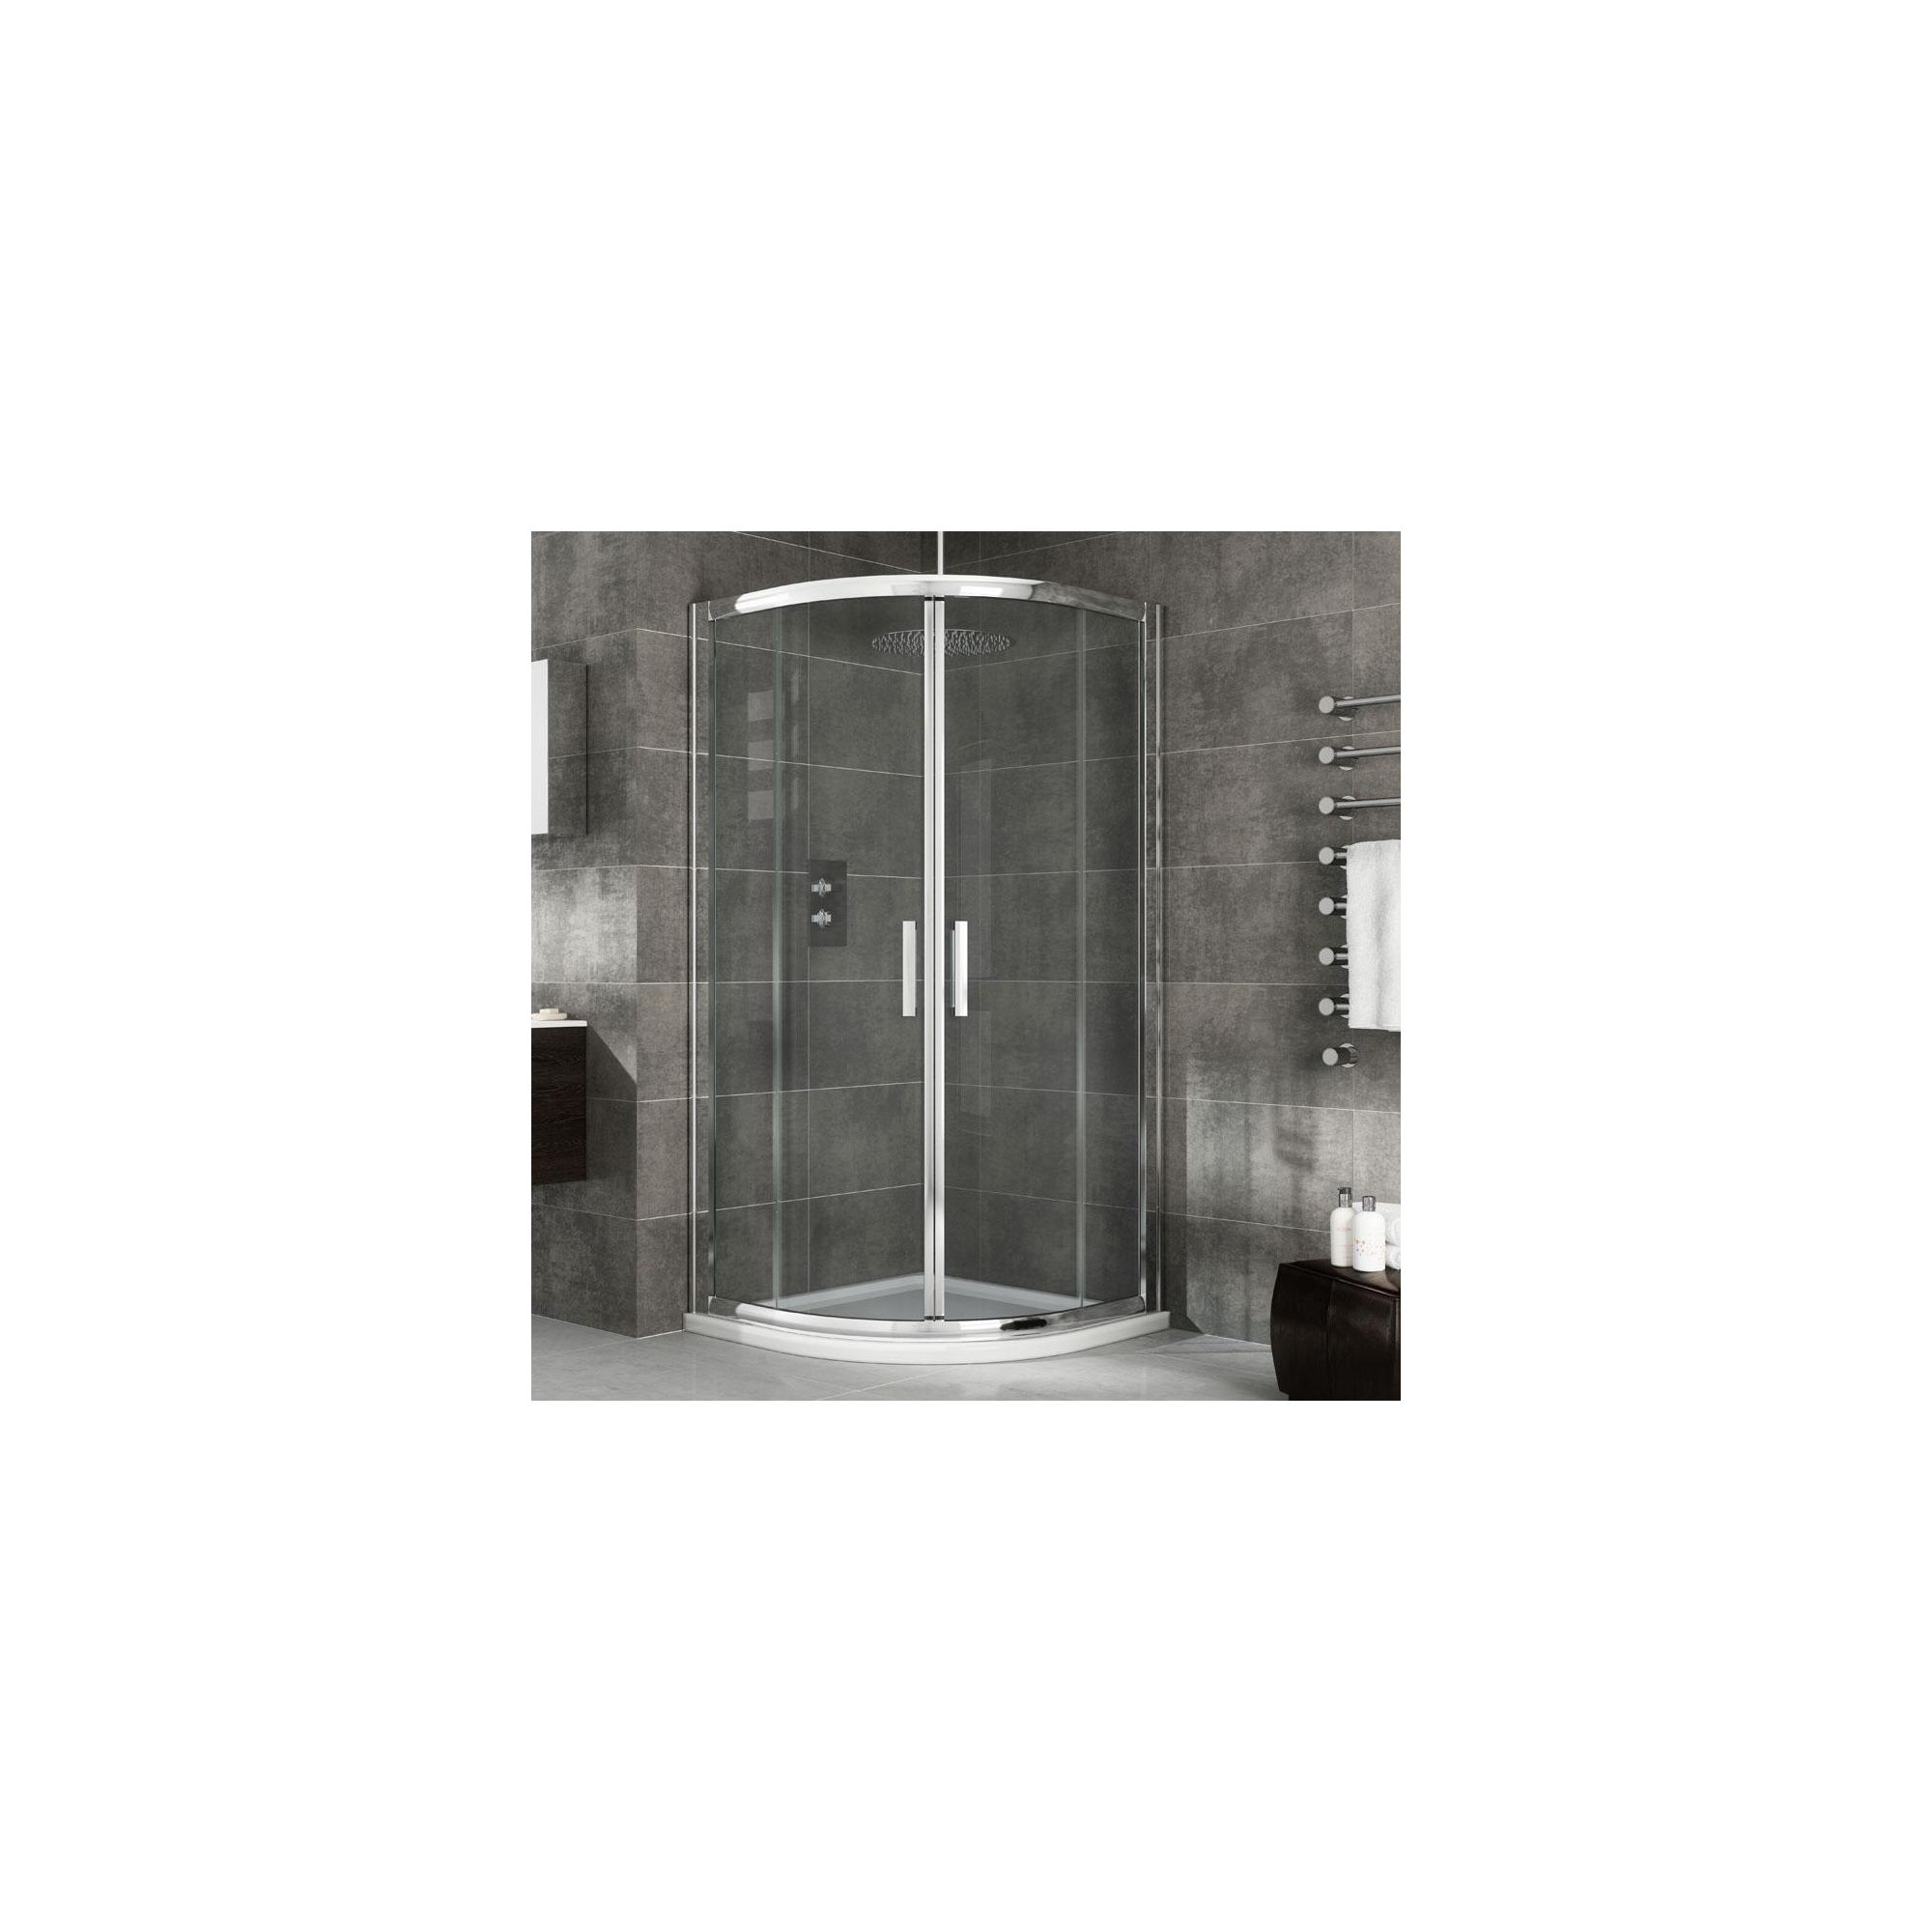 Elemis Eternity Two-Door Quadrant Shower Door, 900mm x 900mm, 8mm Glass at Tesco Direct